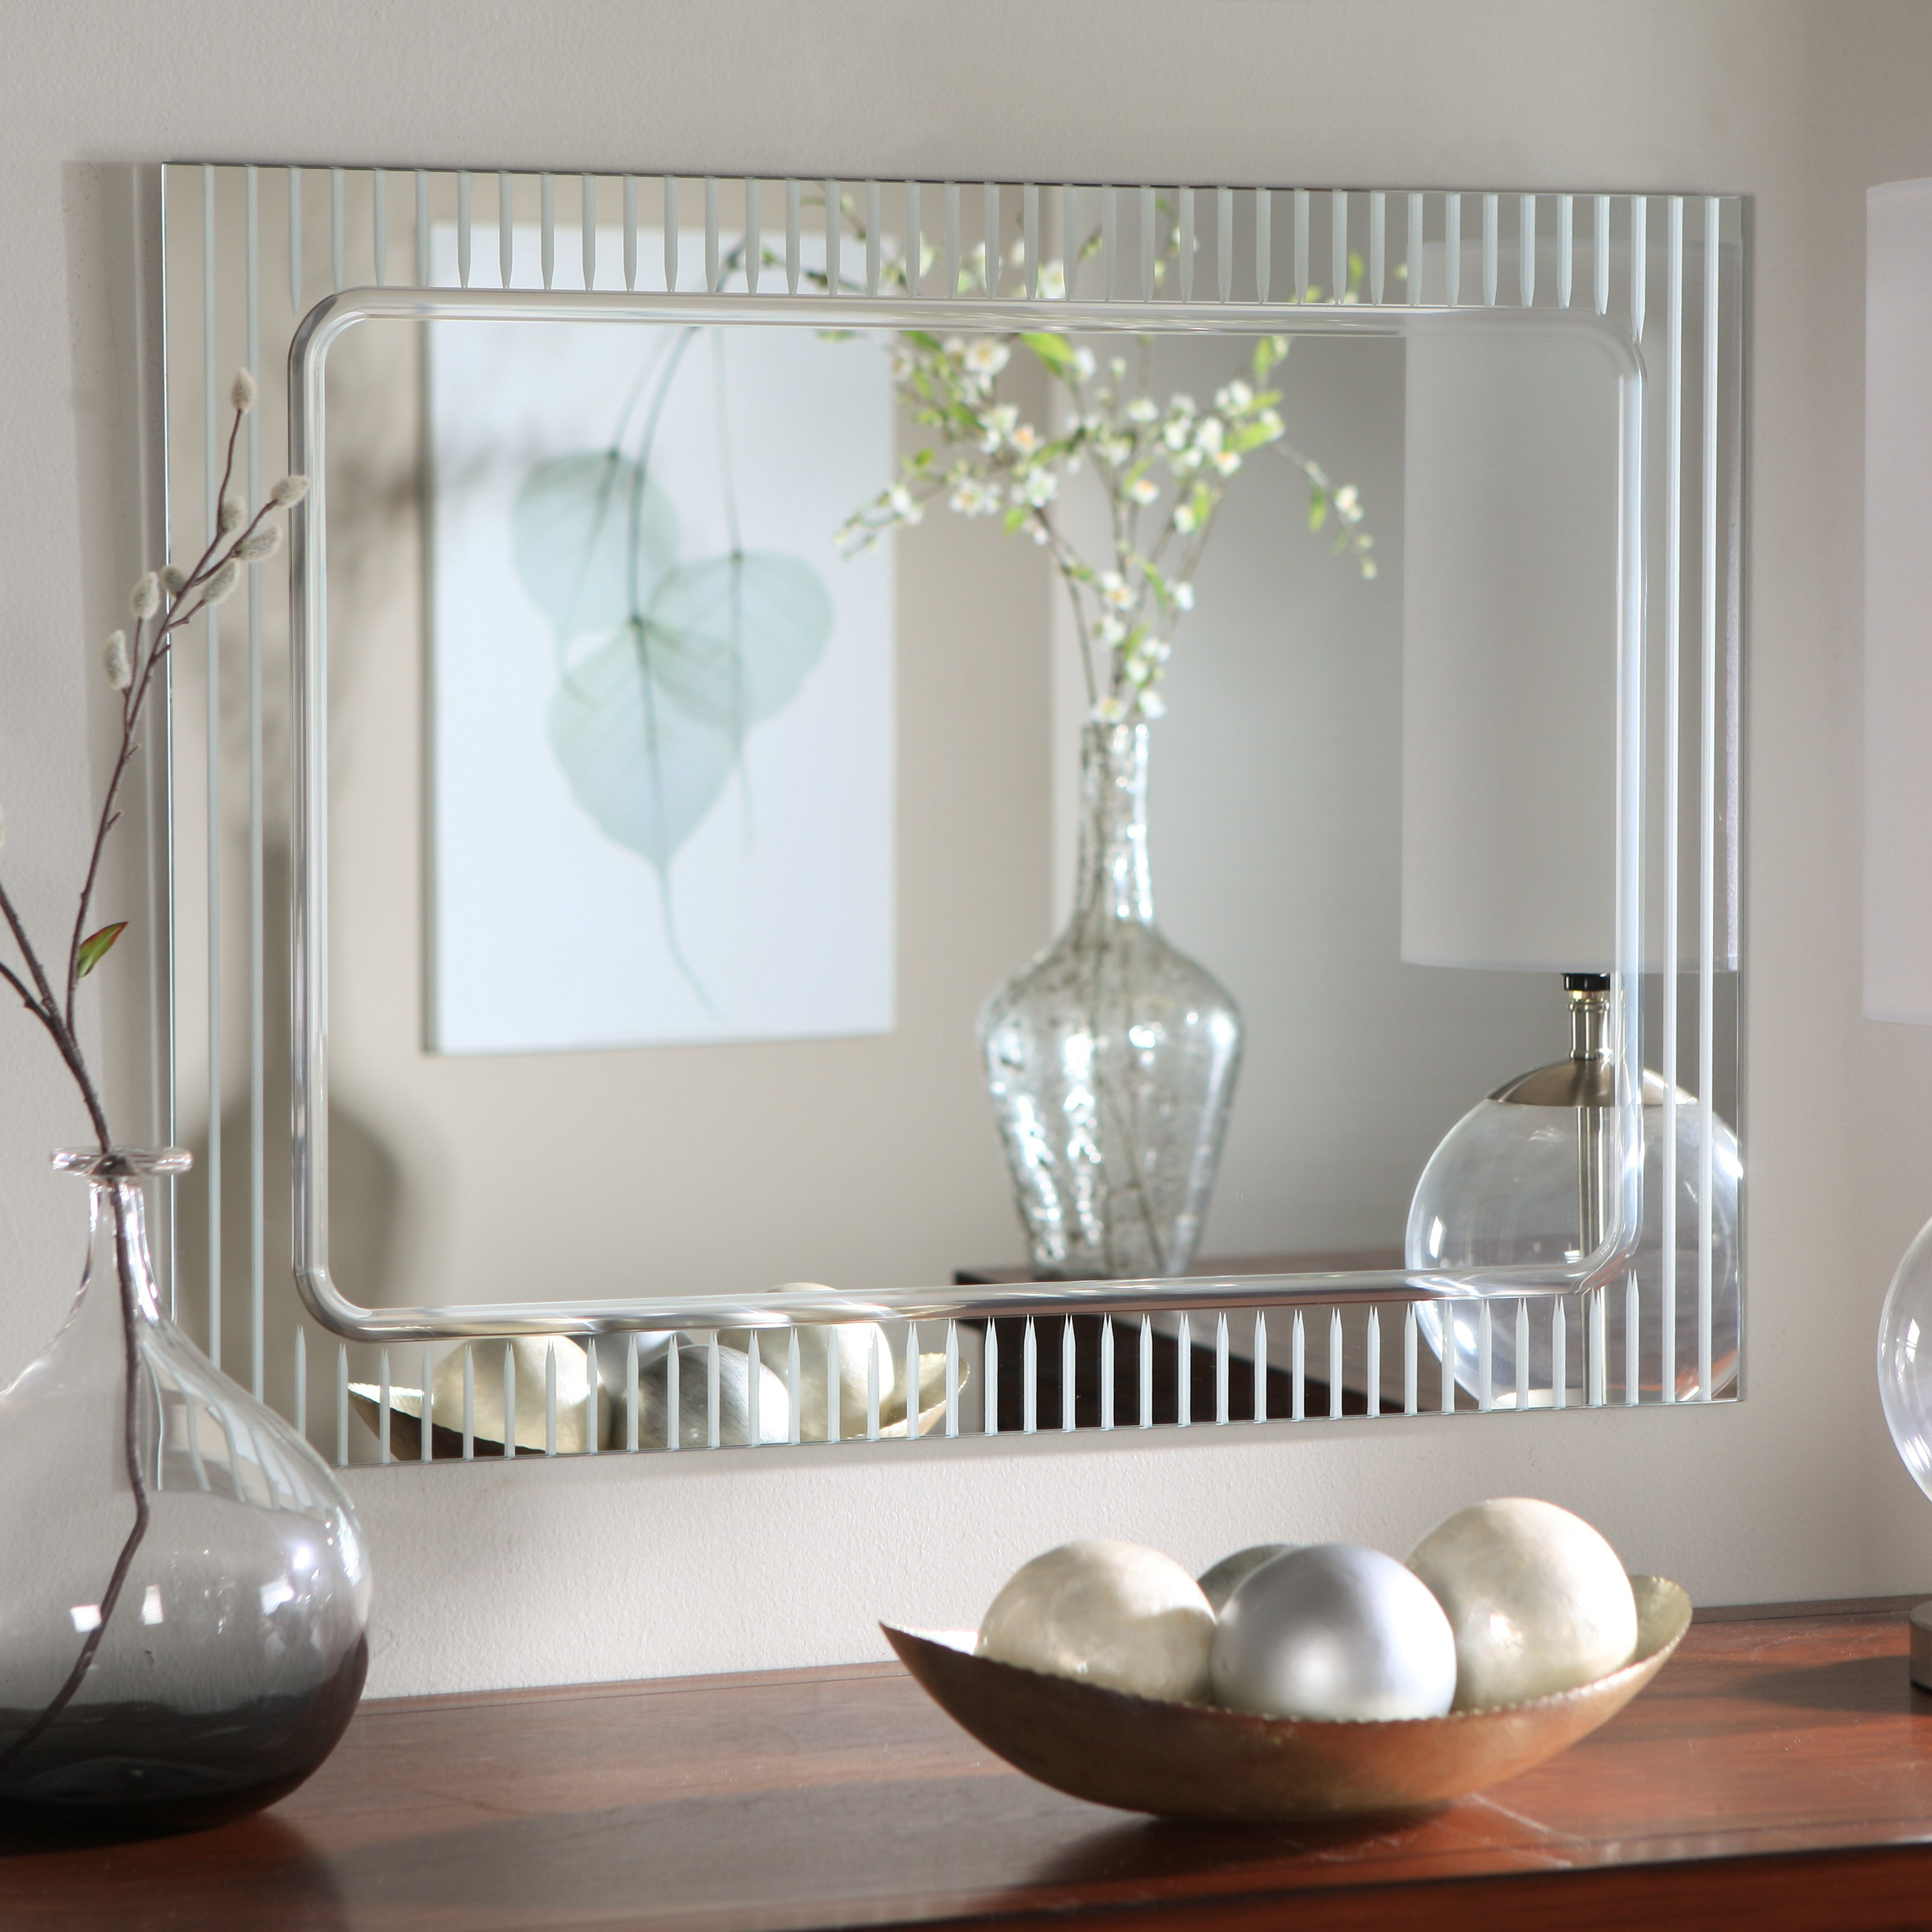 2019 Fancy Bathroom Wall Mirrors Pertaining To Top 30 Marvelous Decorative Bathroom Mirrors Hd Fancy Wall Extra (View 13 of 20)